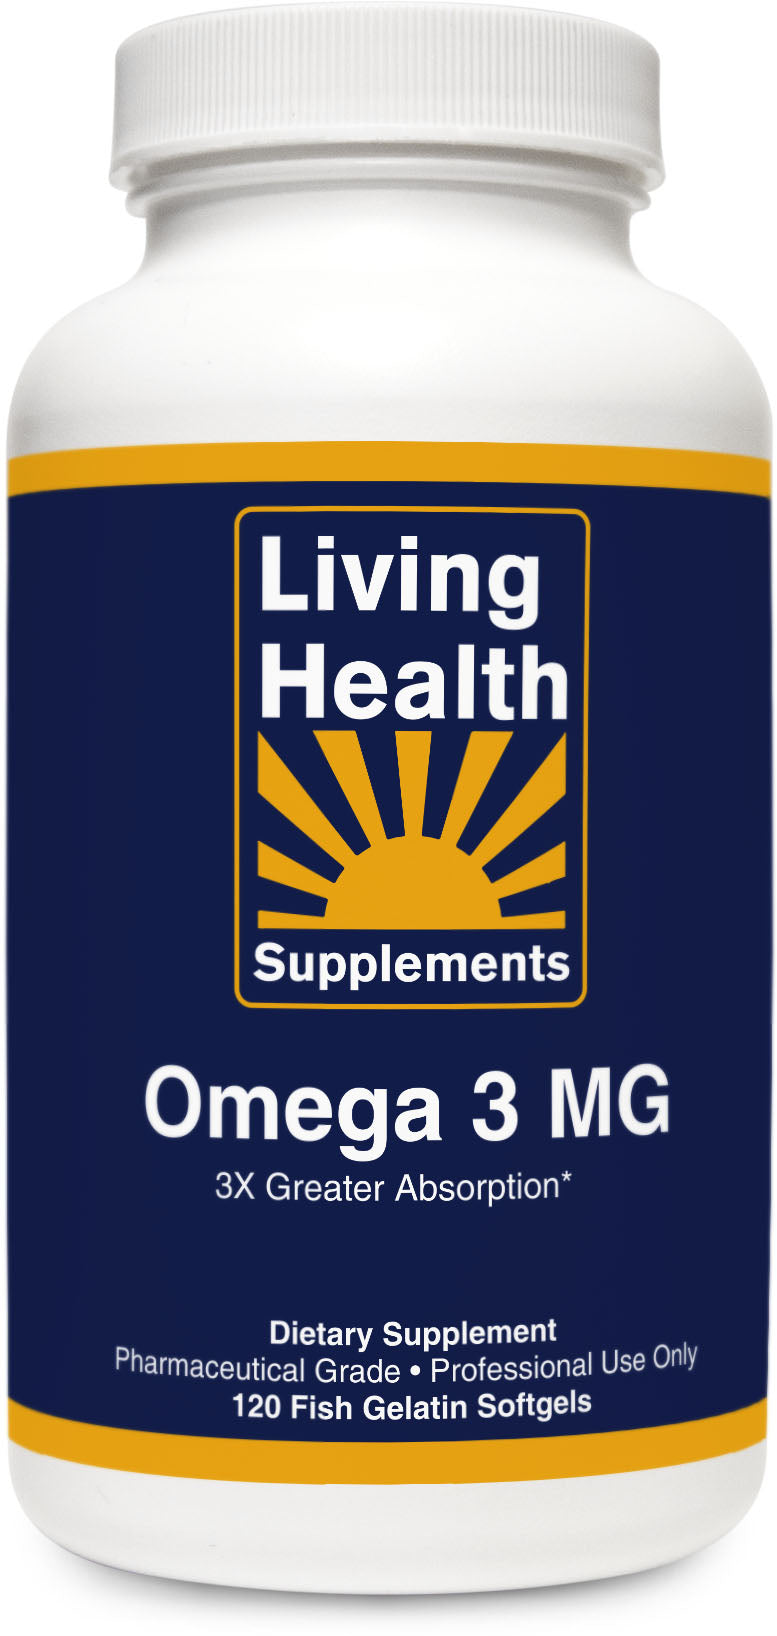 Omega 3 MG - Living Health Market